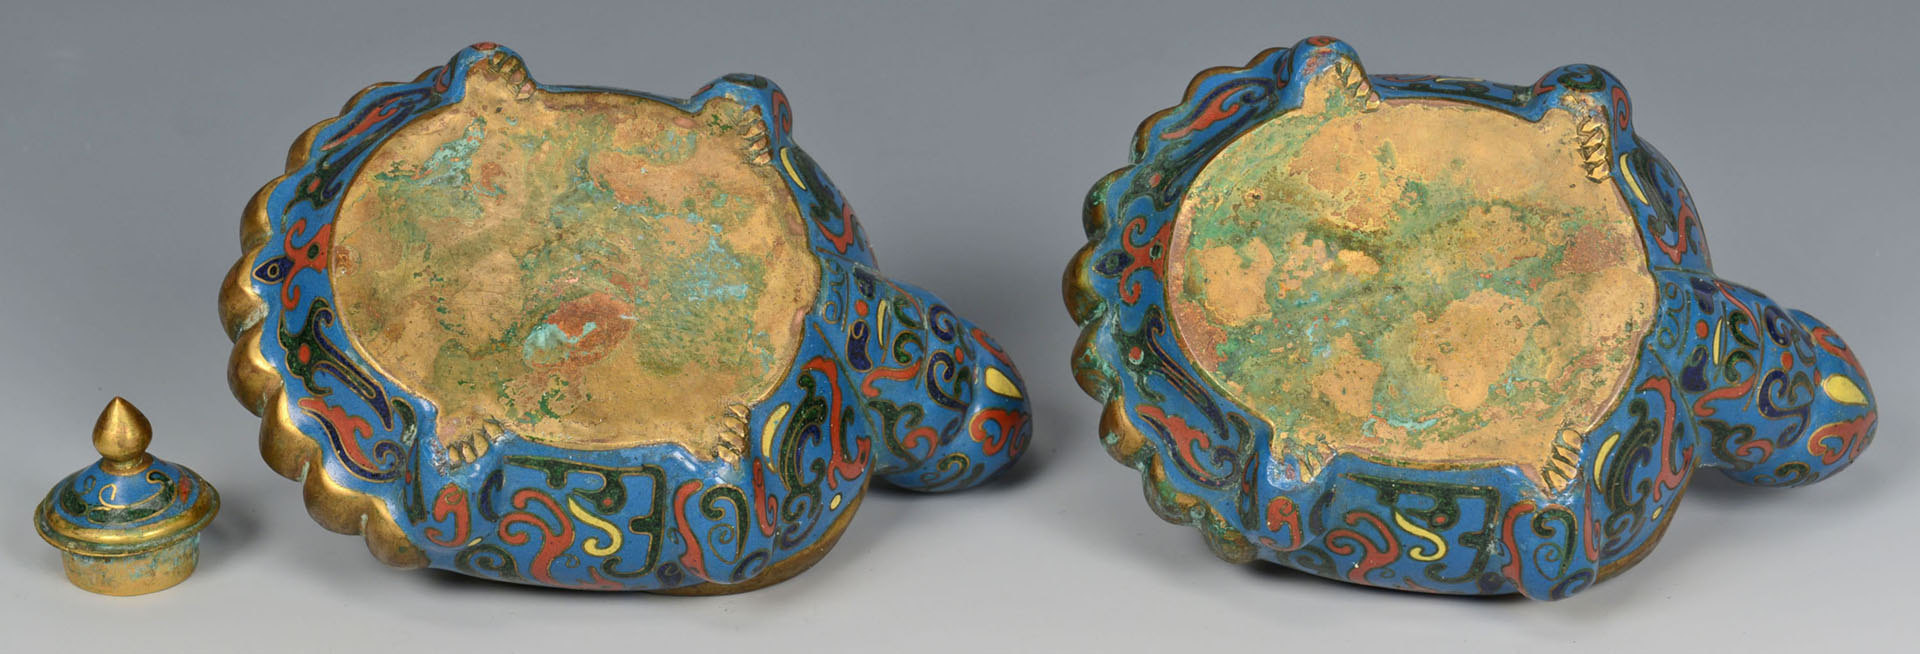 Lot 218: 2 Chinese Champleve Turtles and 2 pcs. Cloisonne